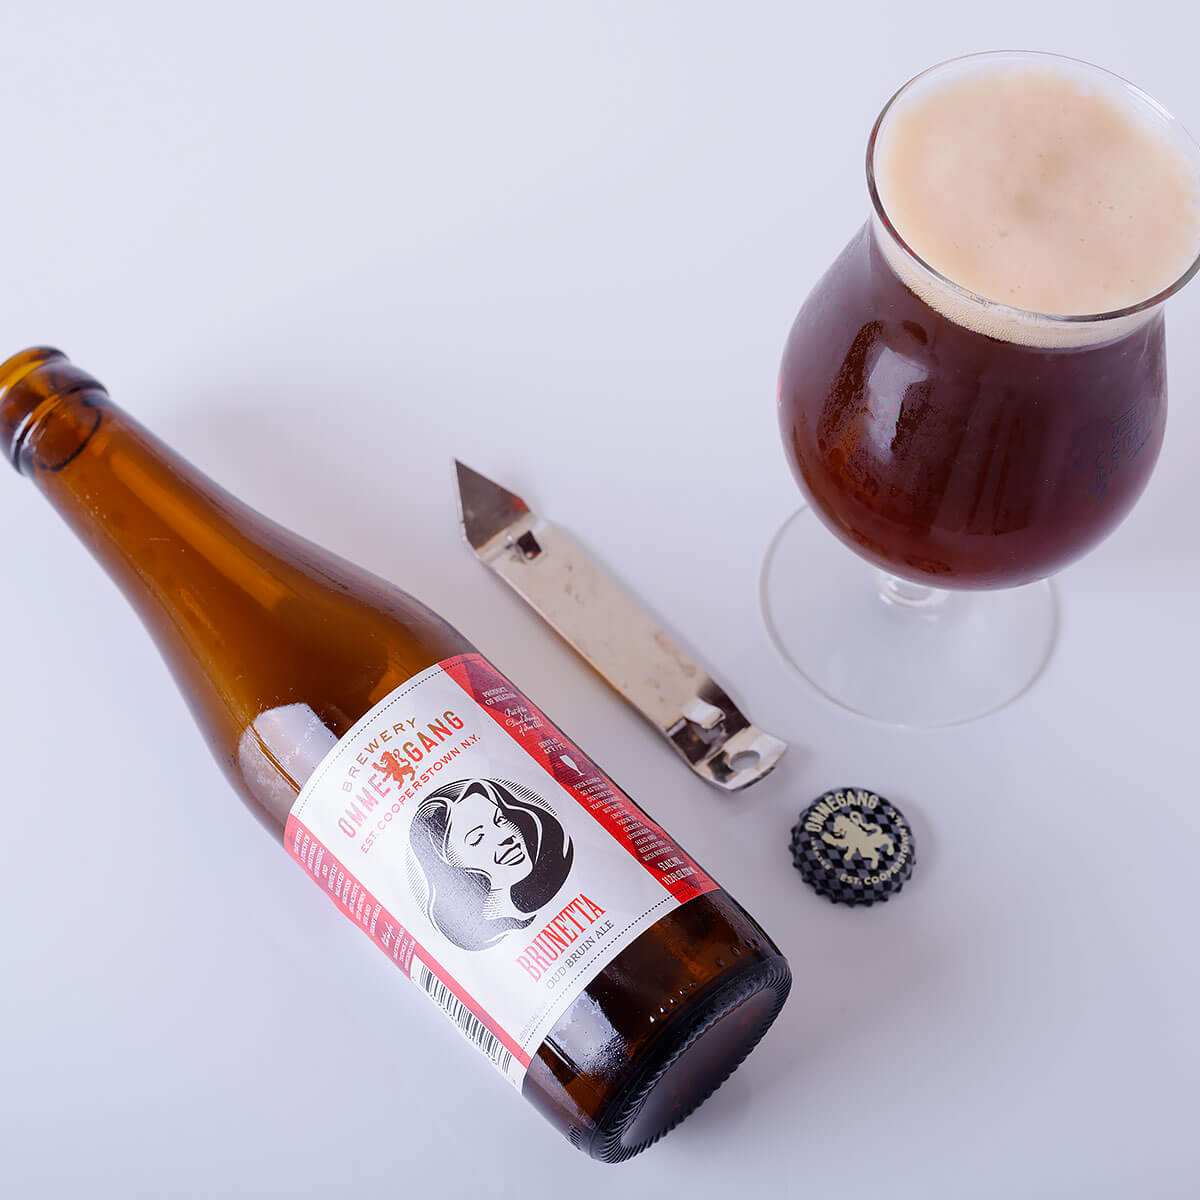 Brunetta, a Belgian-style Oud Bruin by Brewery Ommegang